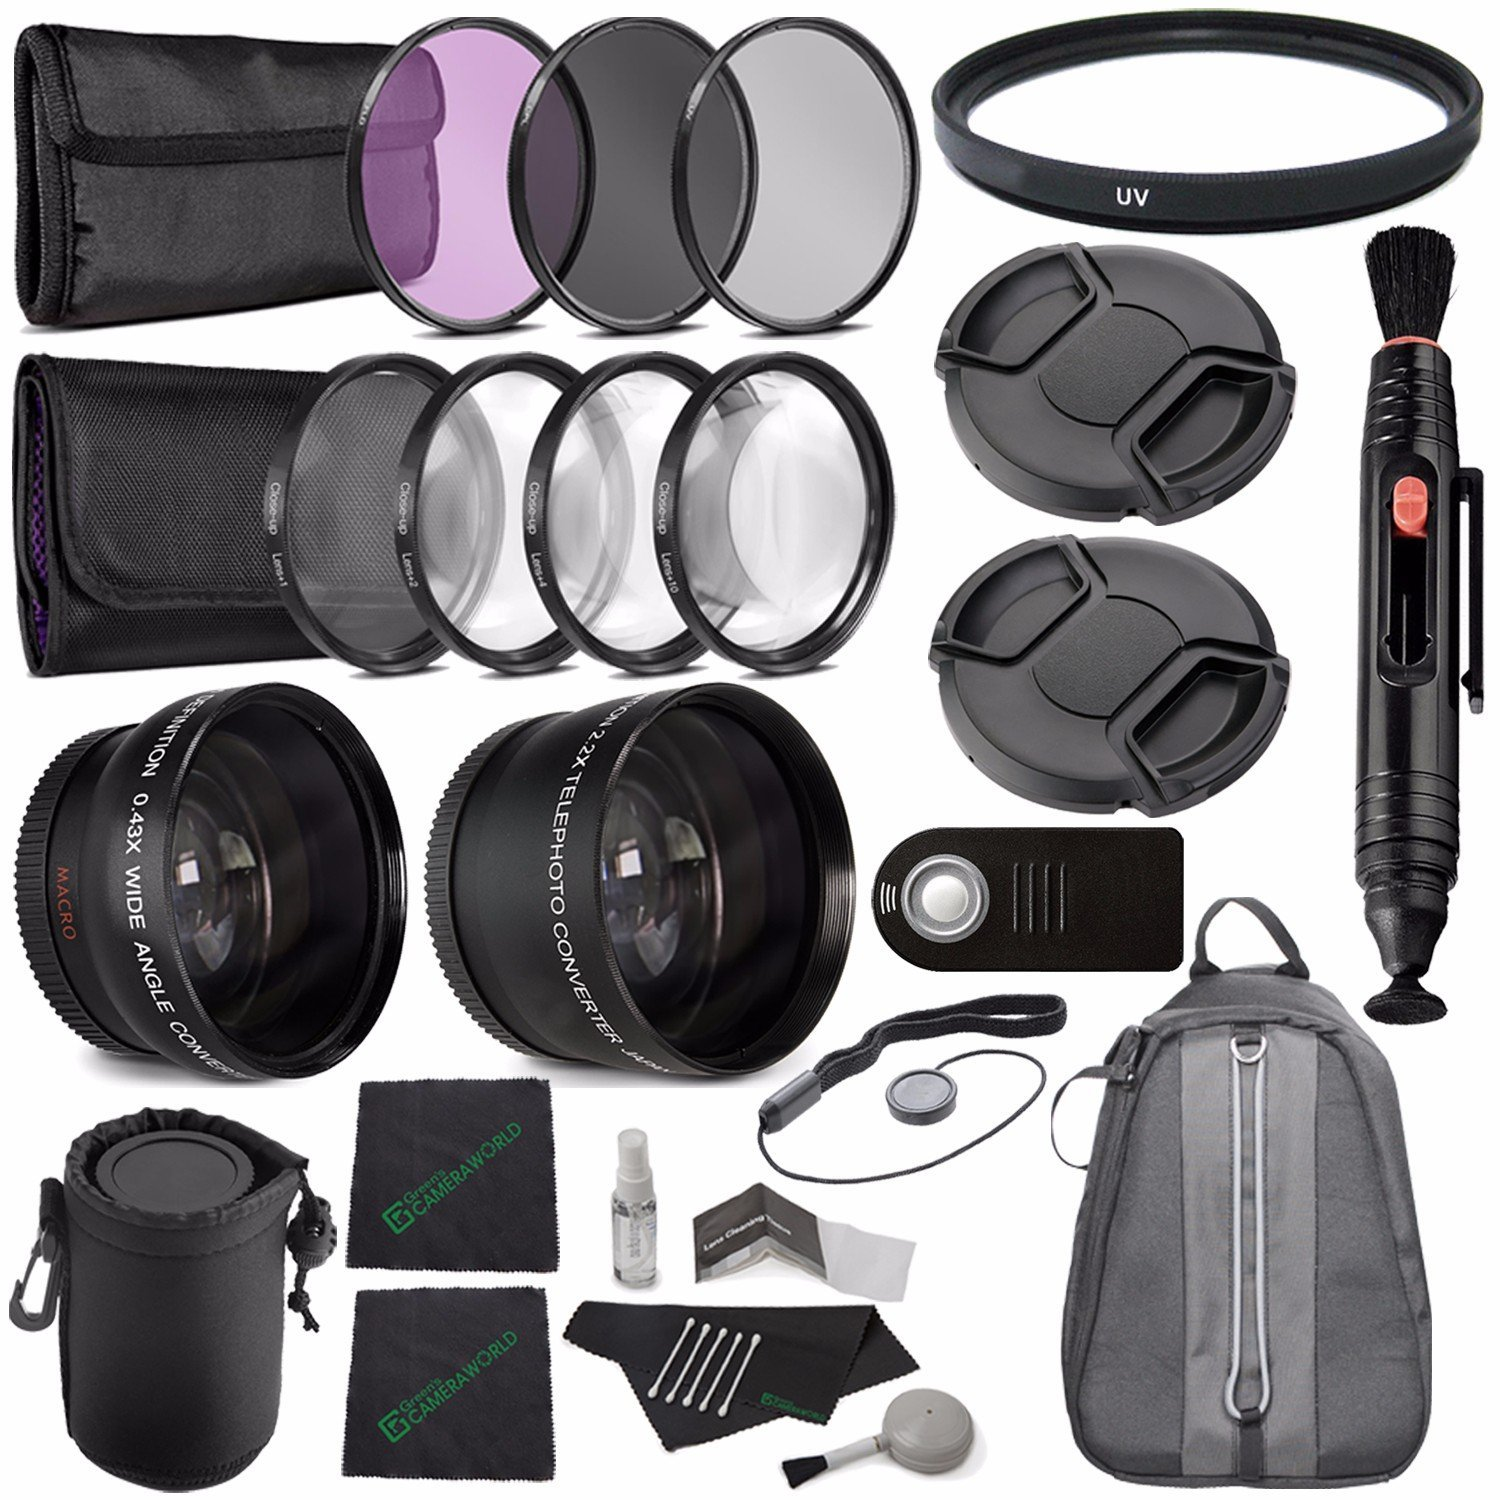 Canon 25mm, 27mm, 30, 30.5mm with a 0.5x Wide Angle Lens Samsung GFM Digital Conversion Lens Kit JVC and other brand Camcorders 2.0x Telephoto Lens and 4 Adapter Rings for Sony